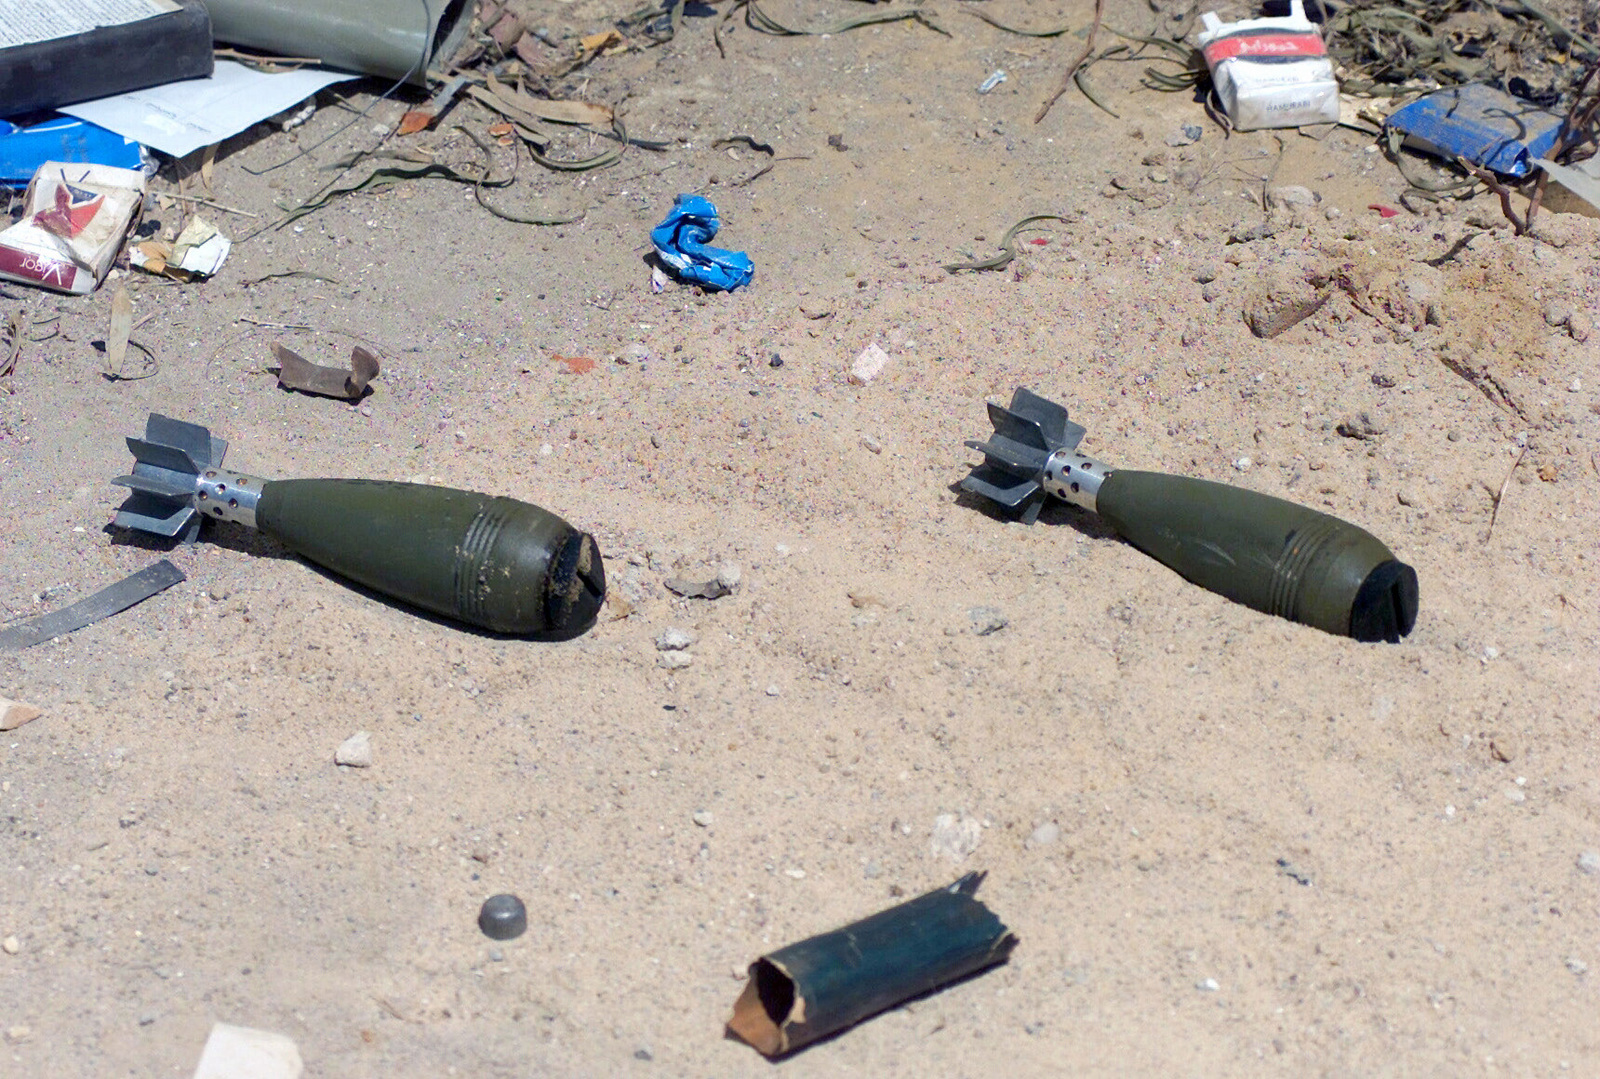 Two Iraqi 82mm mortar rounds lay in an El Fedayeen Headquarters